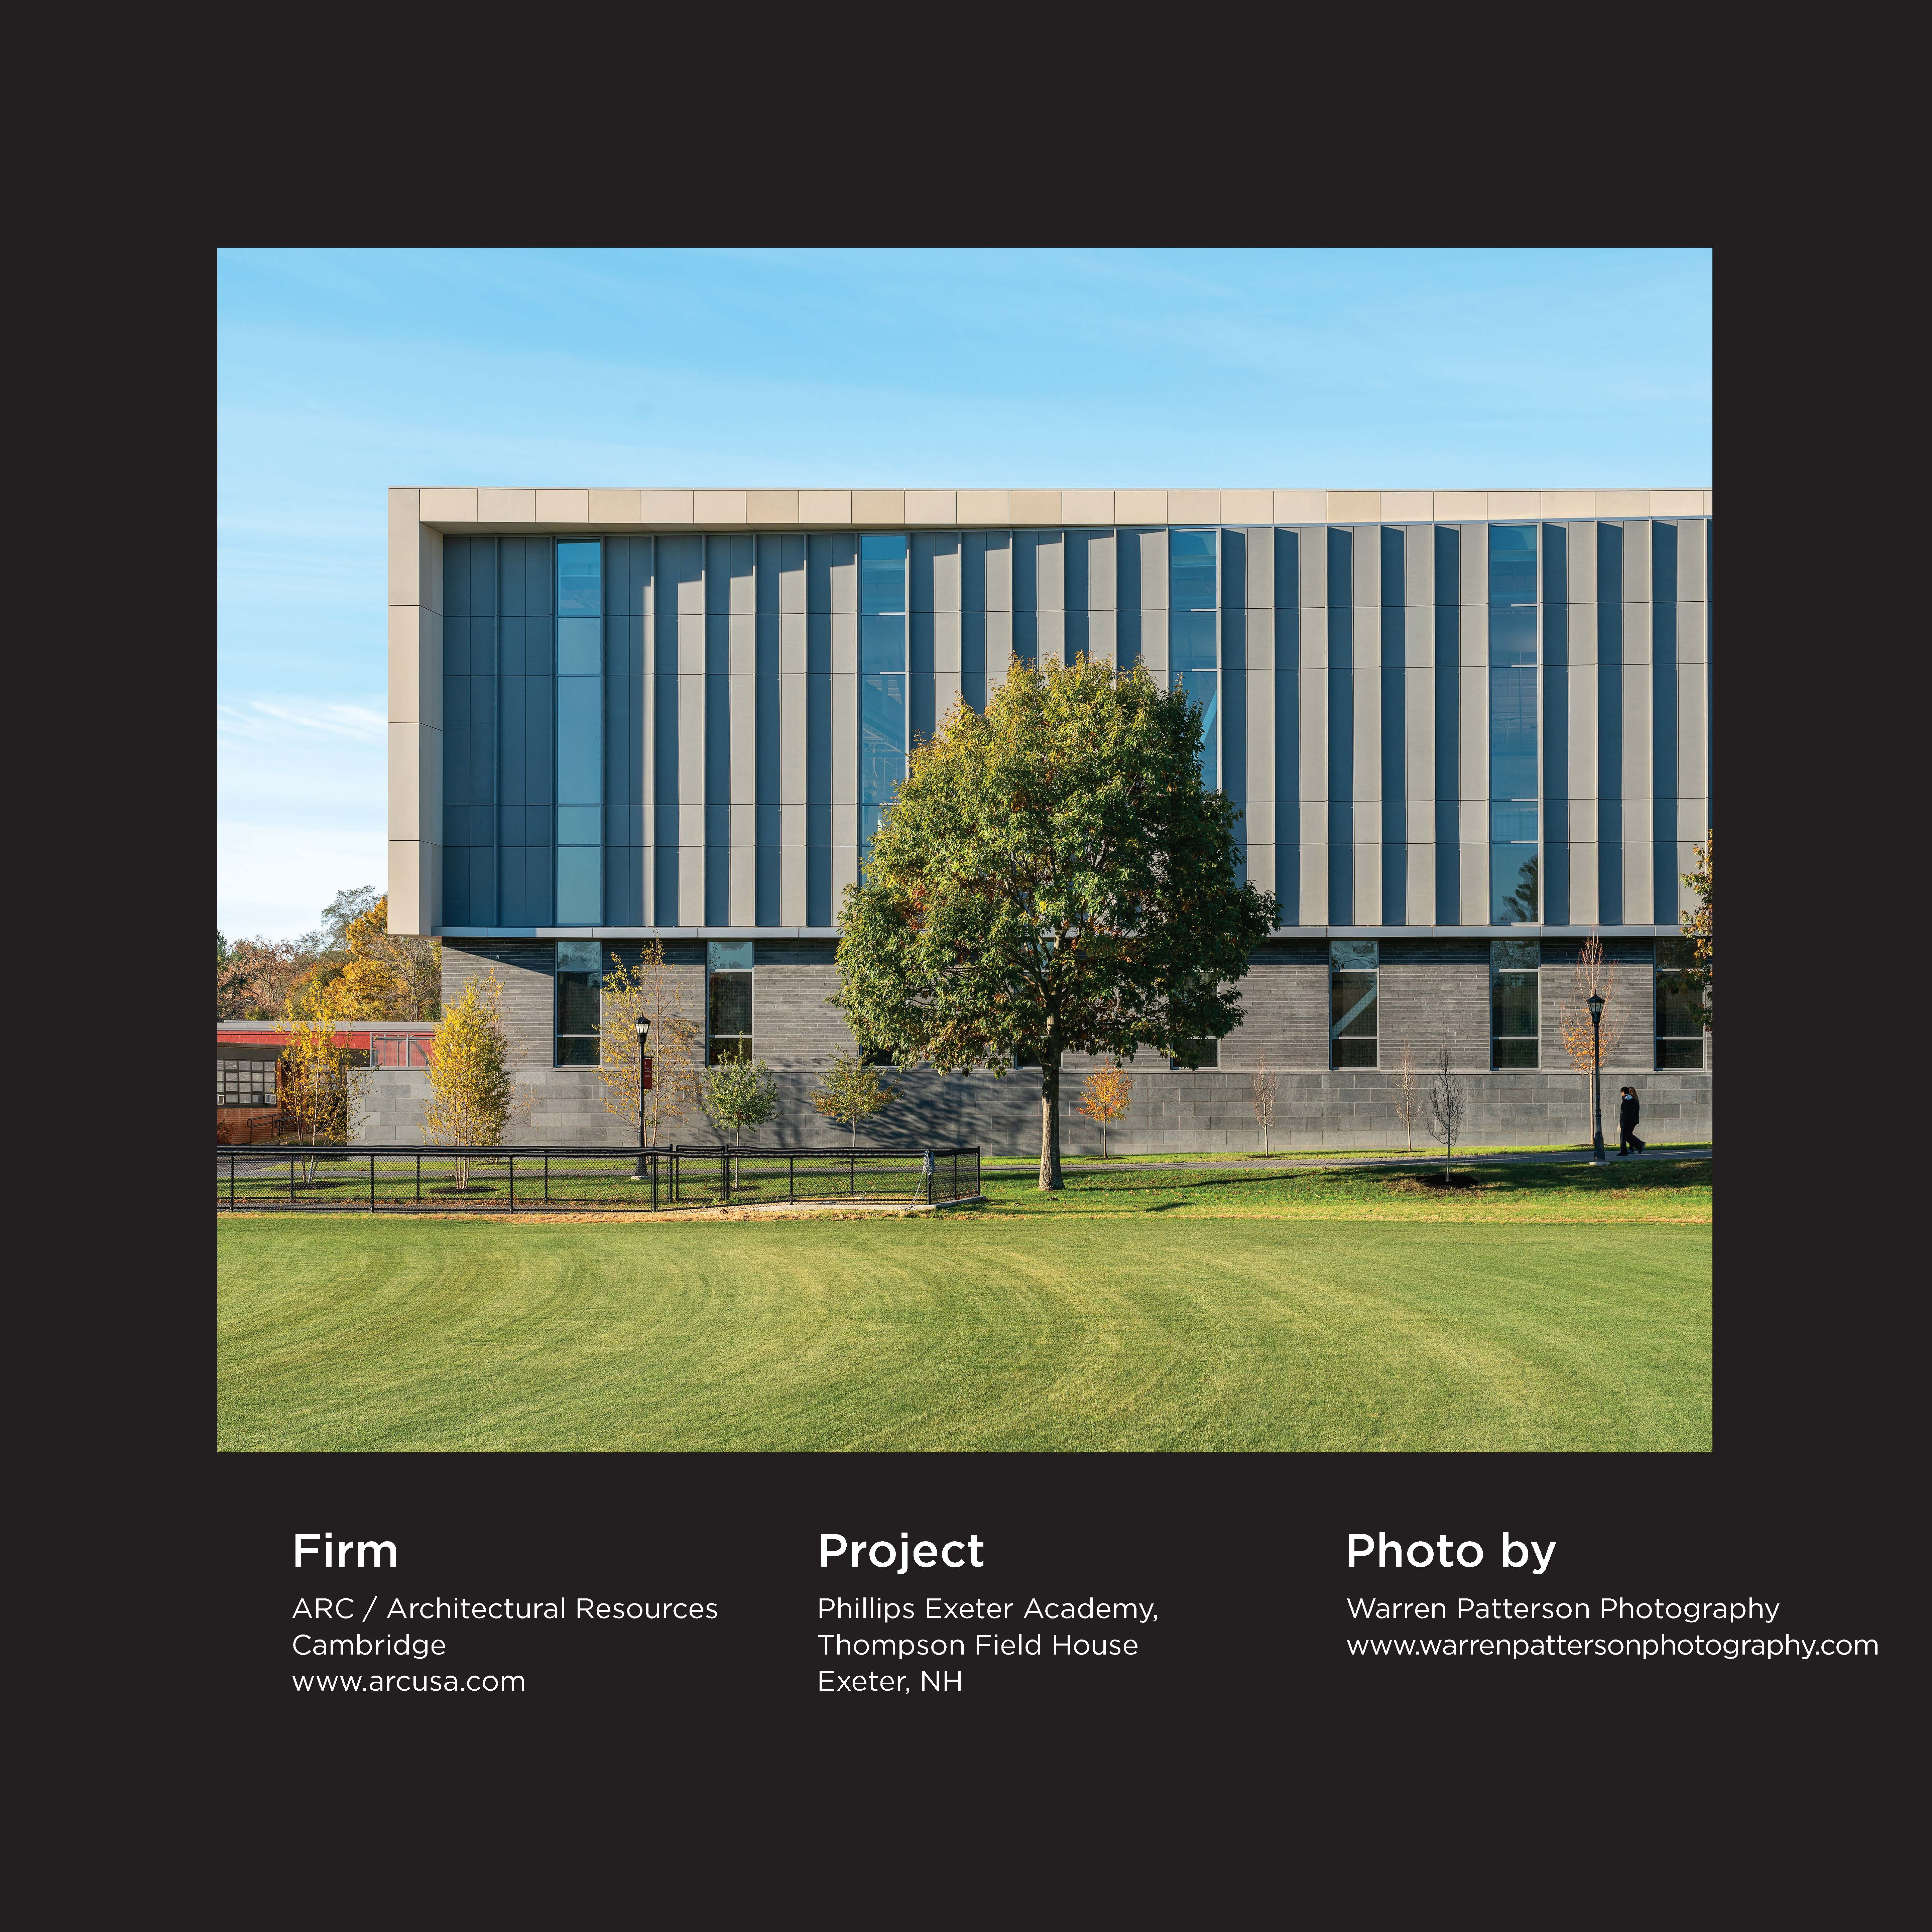 ARC|Architectural Resources Cambridge